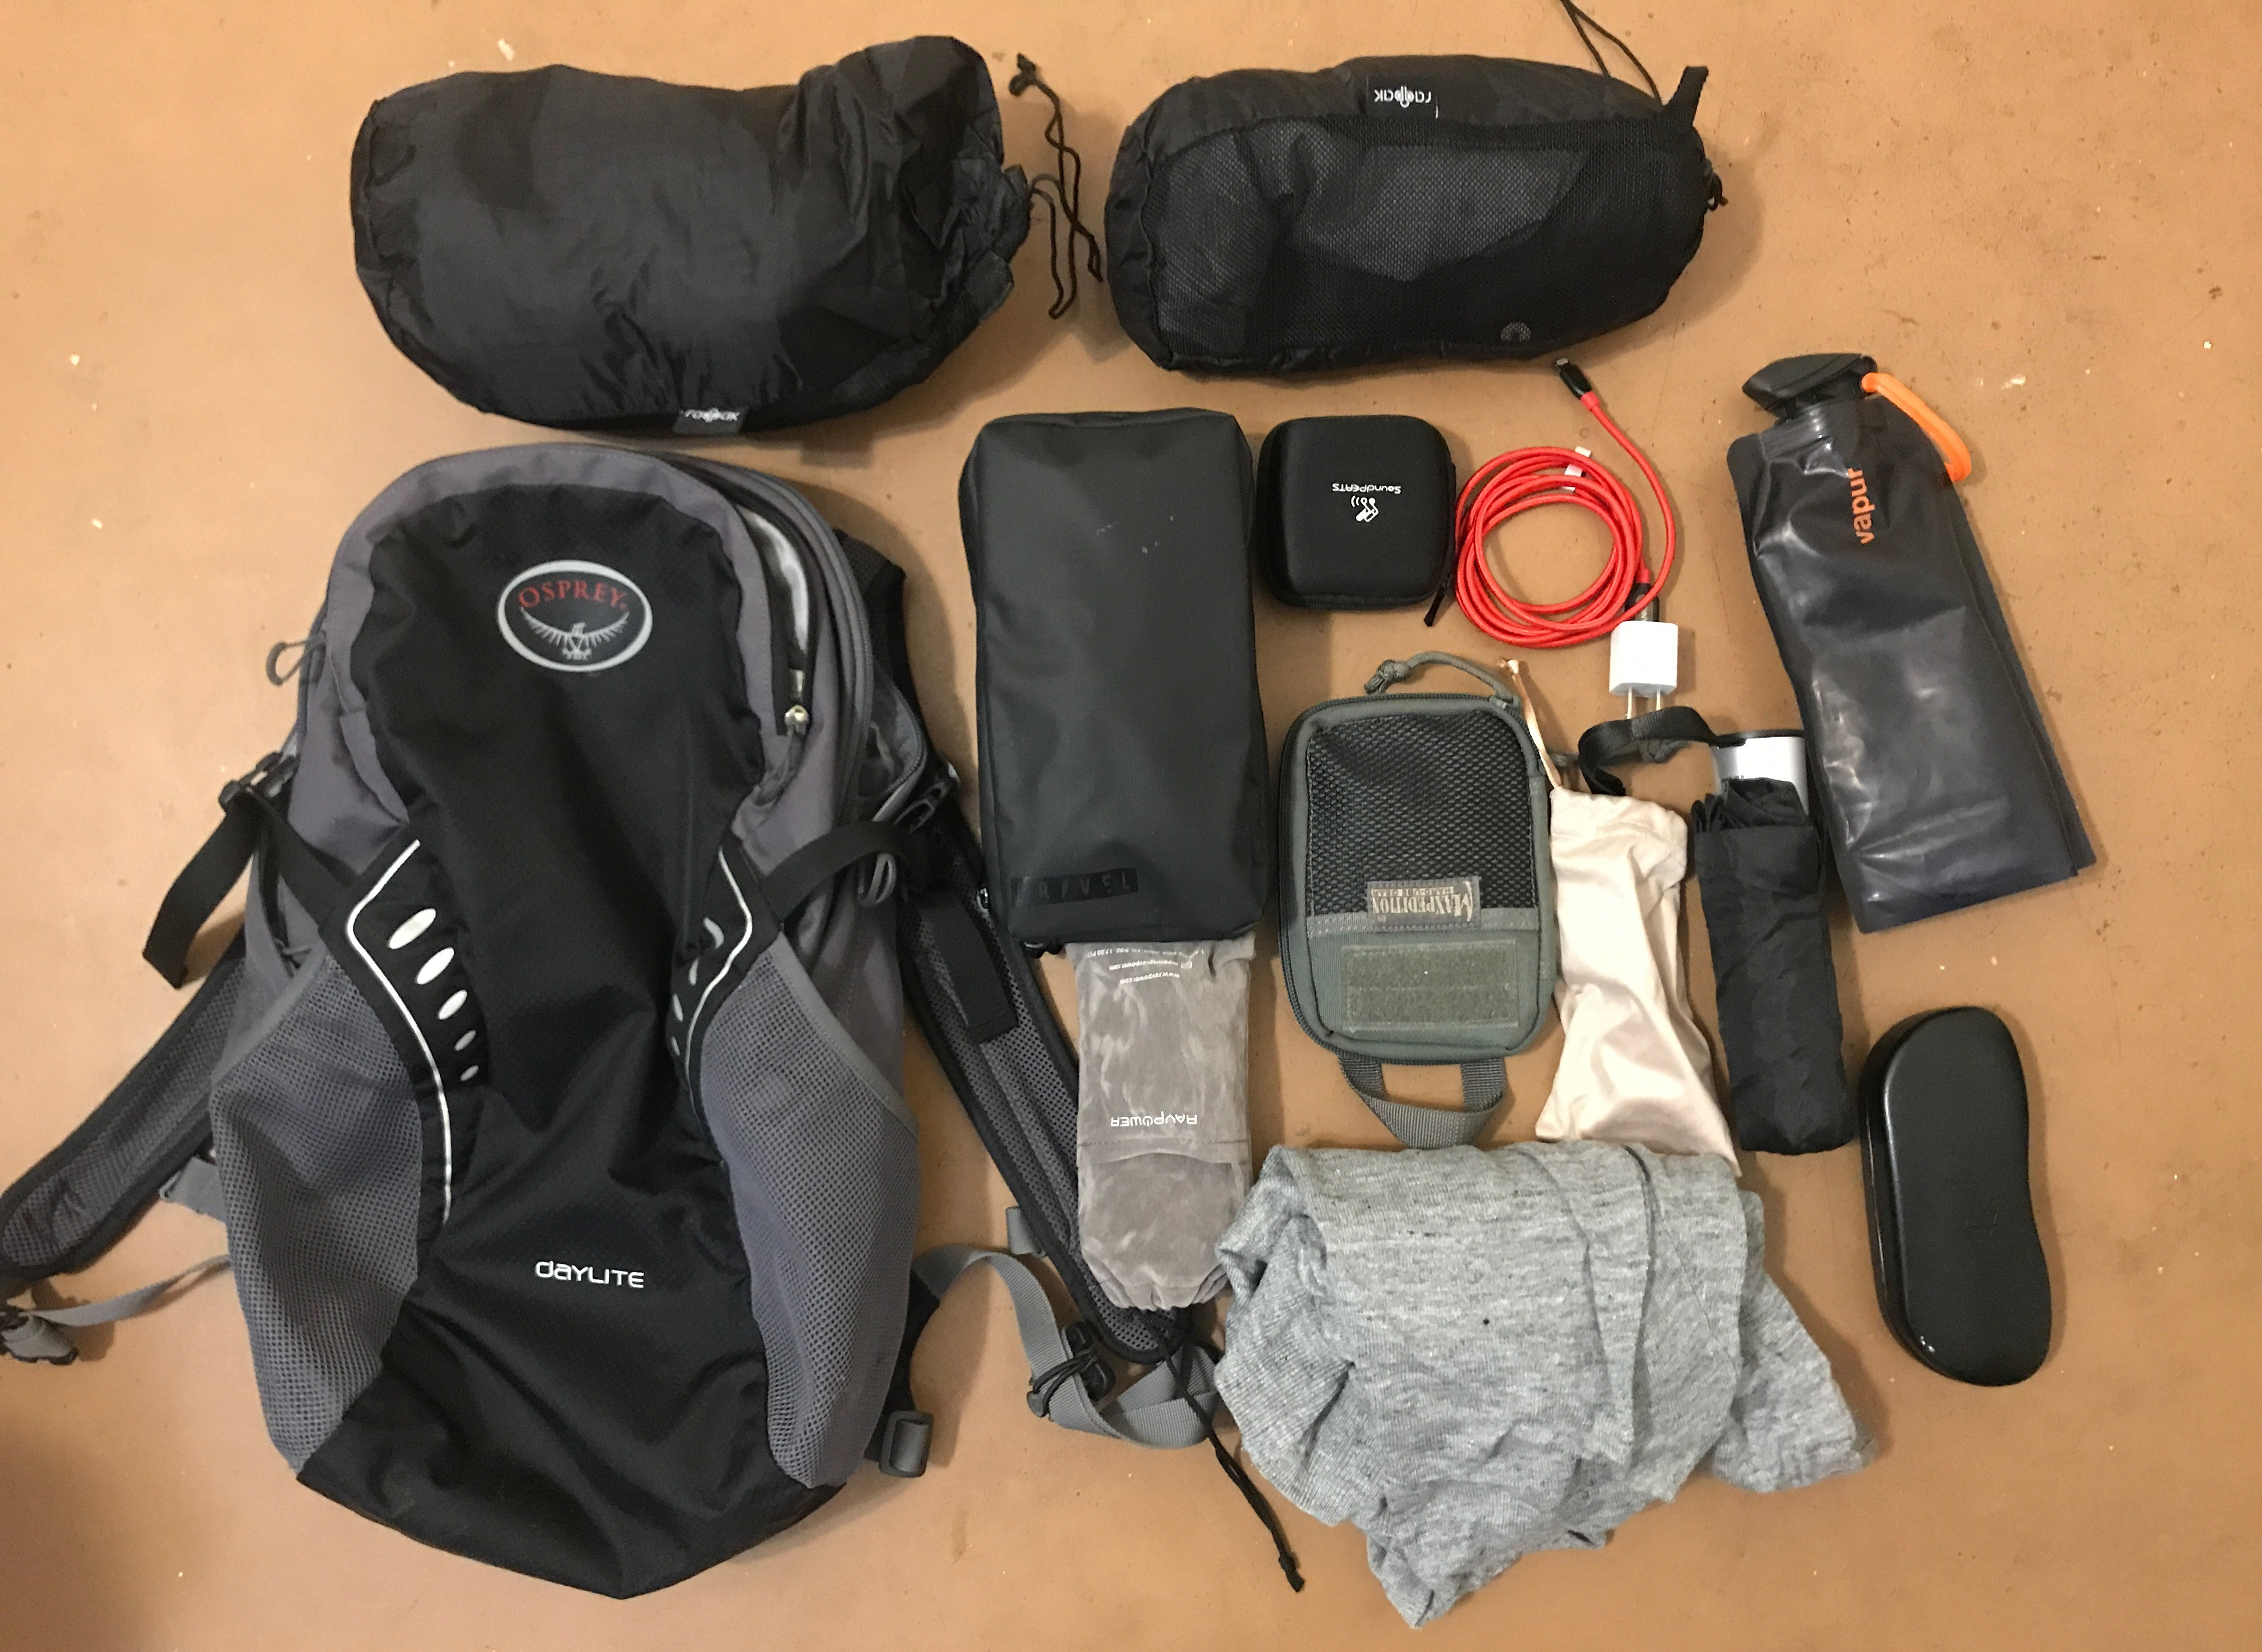 Osprey Daylite packing layout